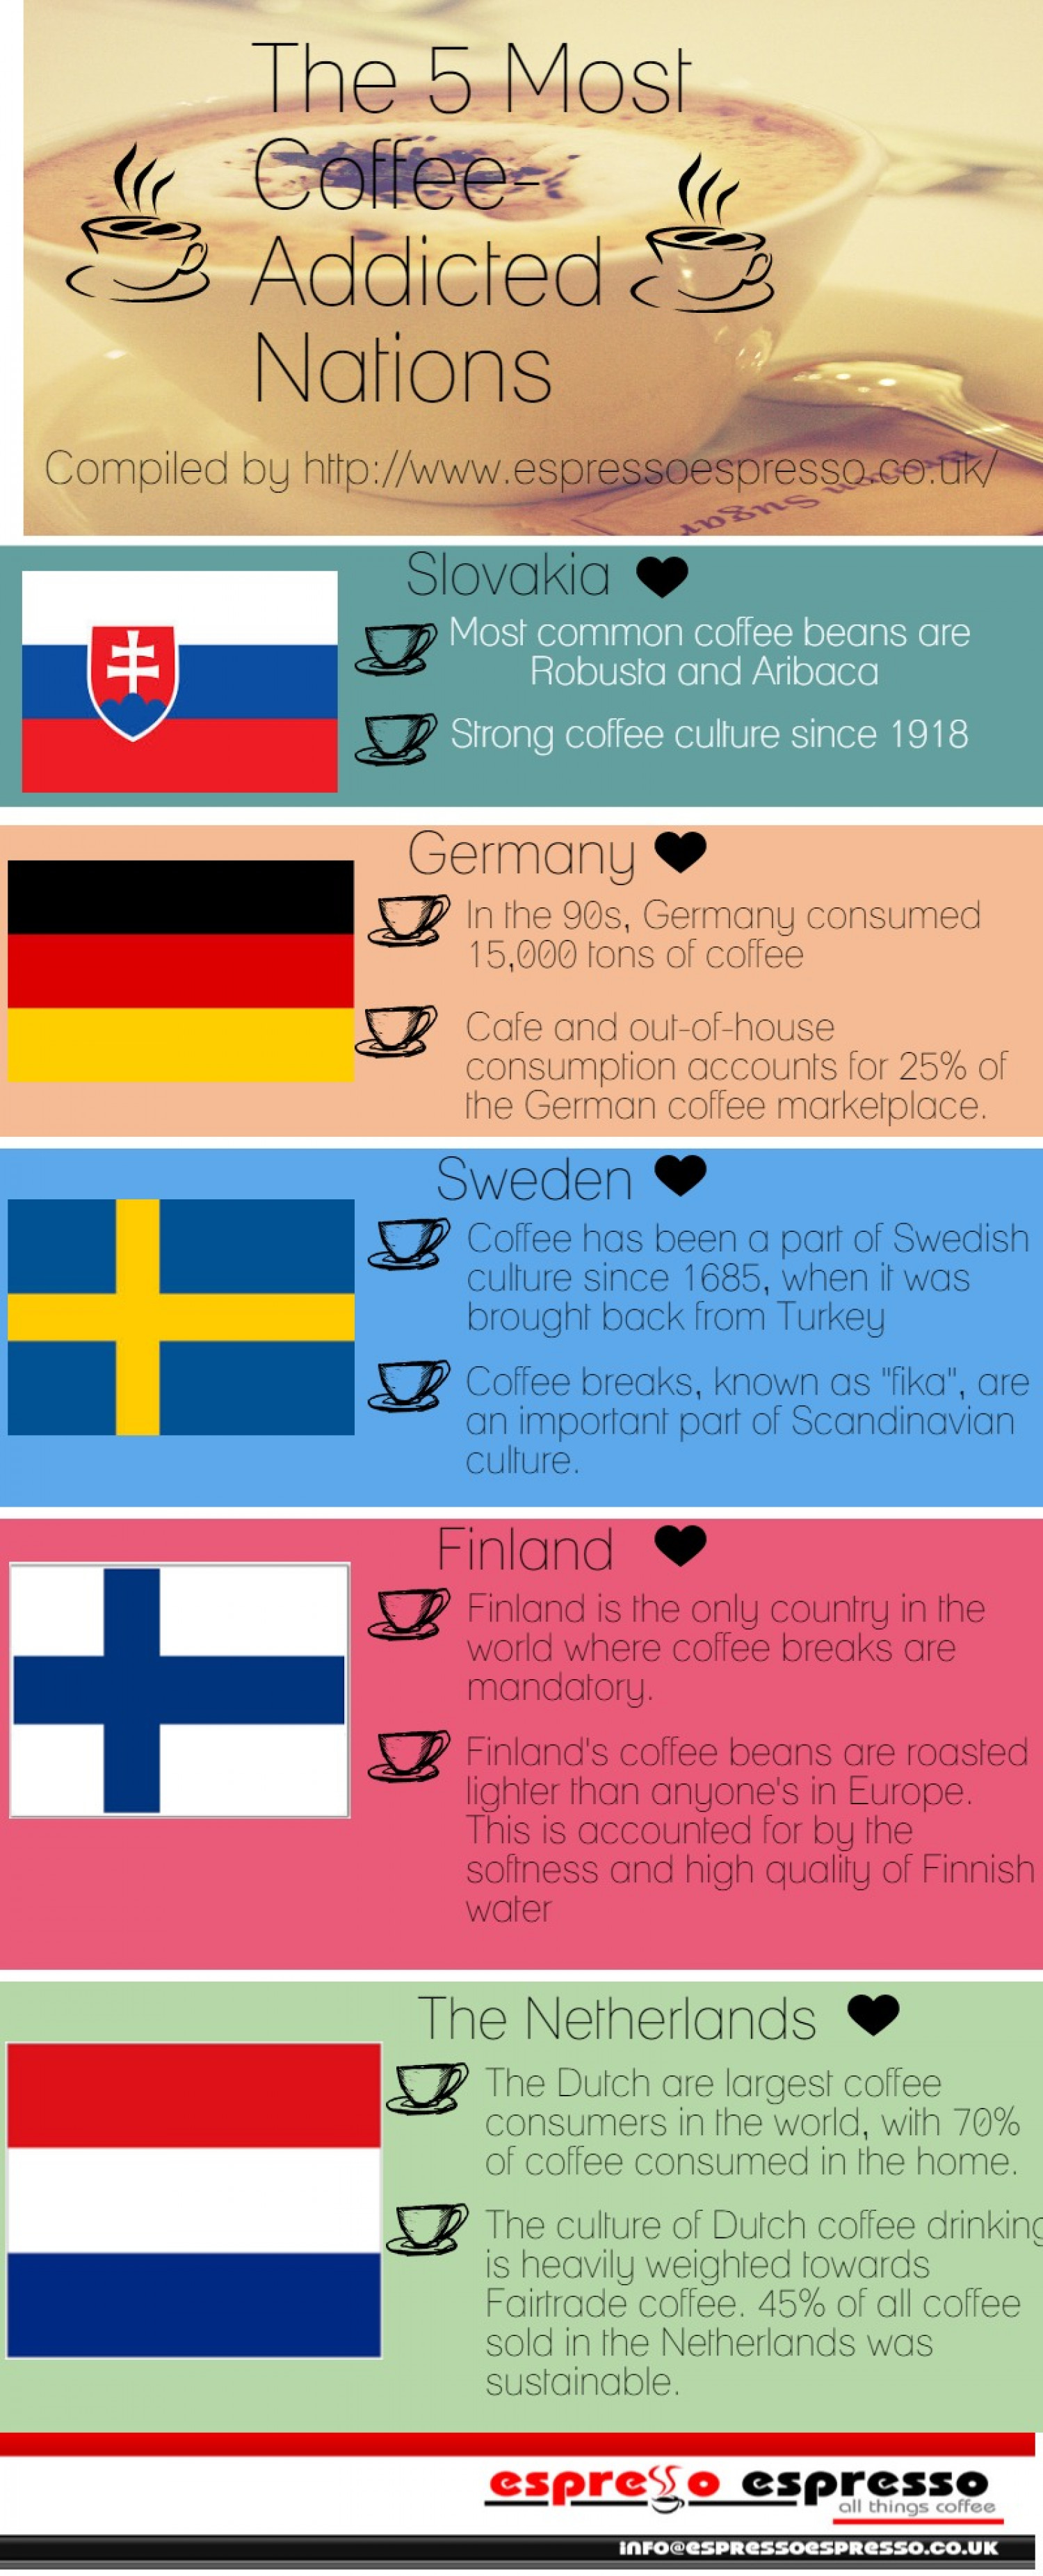 The 5 Most Coffee Addicted Nations  Infographic